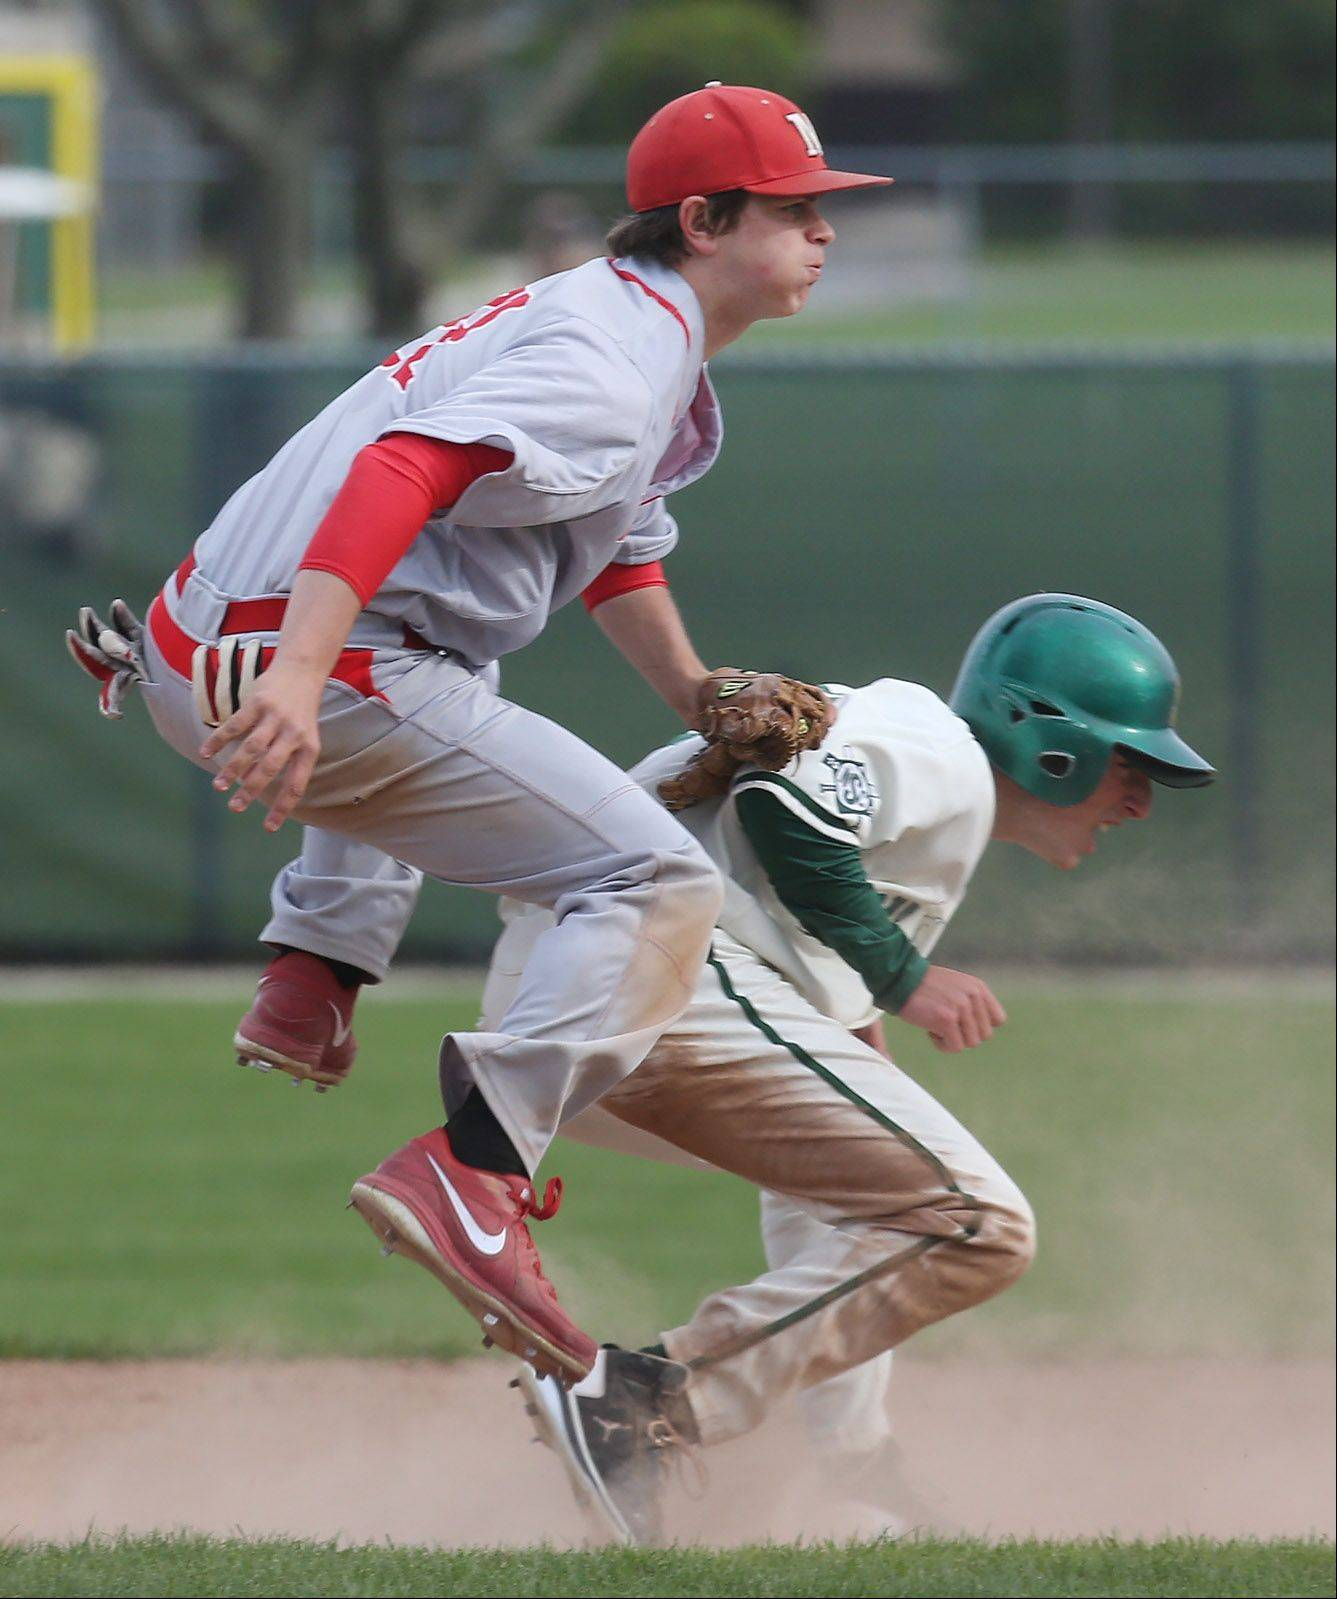 Mundelin shortstop Will Farmer turns the double play, getting an out on Stevenson runner Eli Greenspon in the third inning Monday in Lincolnshire.